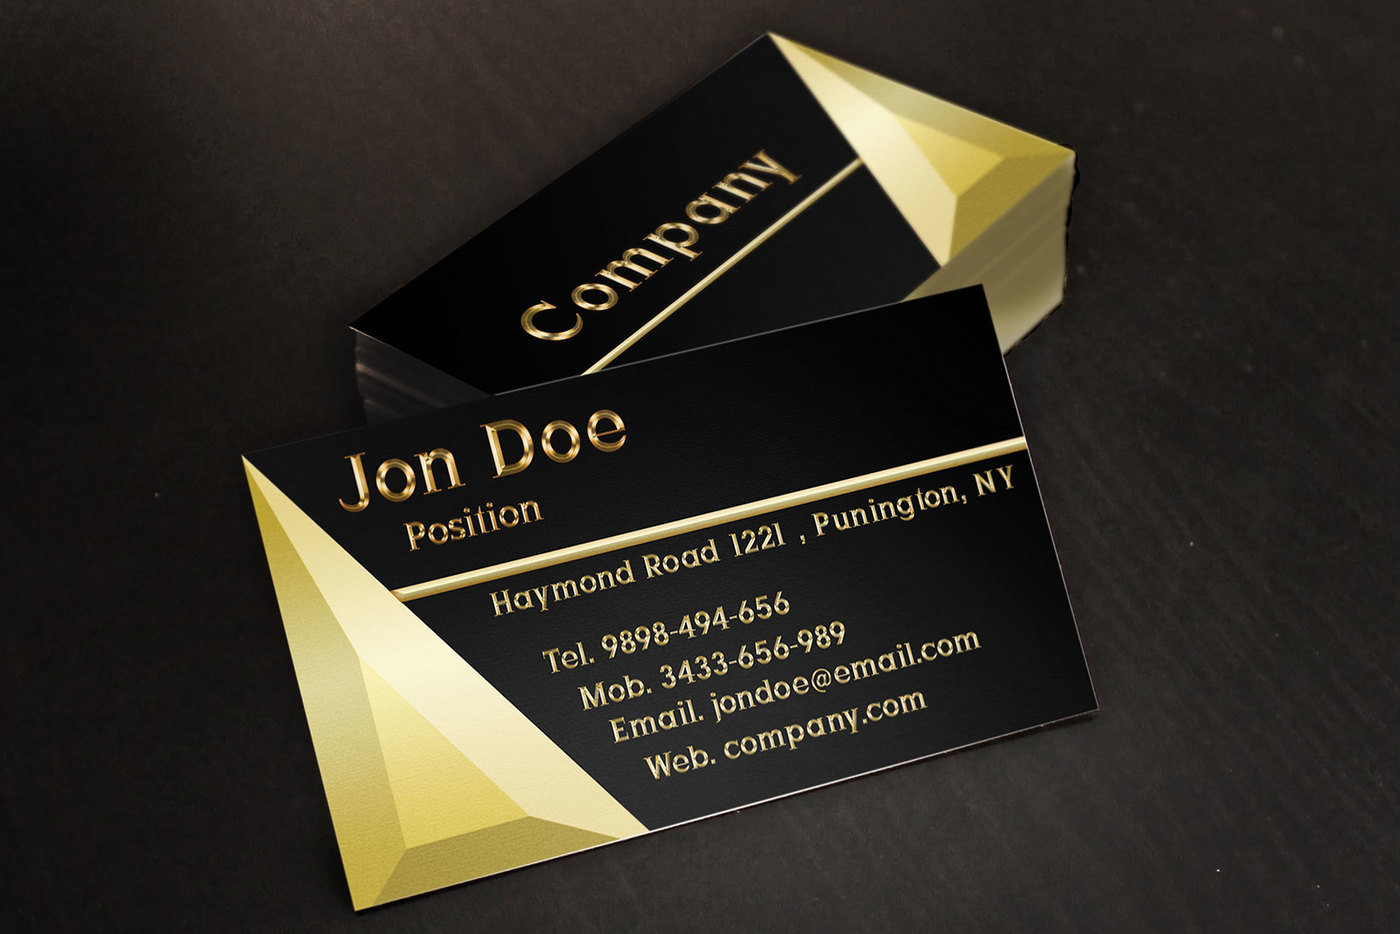 Black And Gold Jewelry Store Business Card Template By Borce - Jewelry business card templates